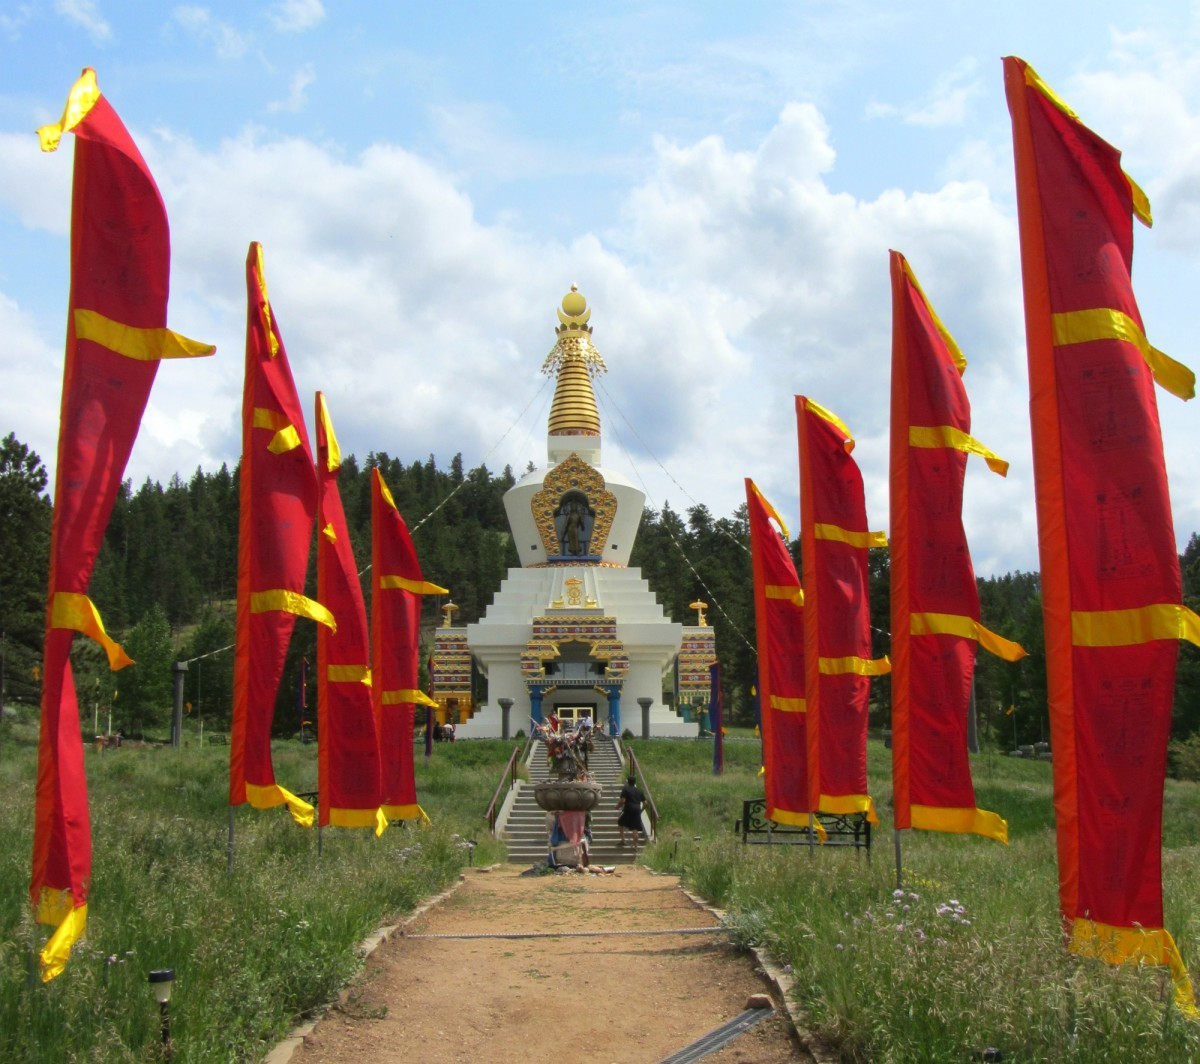 The Great Stupa of Dharmakaya - A Buddhist Shrine in the Colorado Rockies